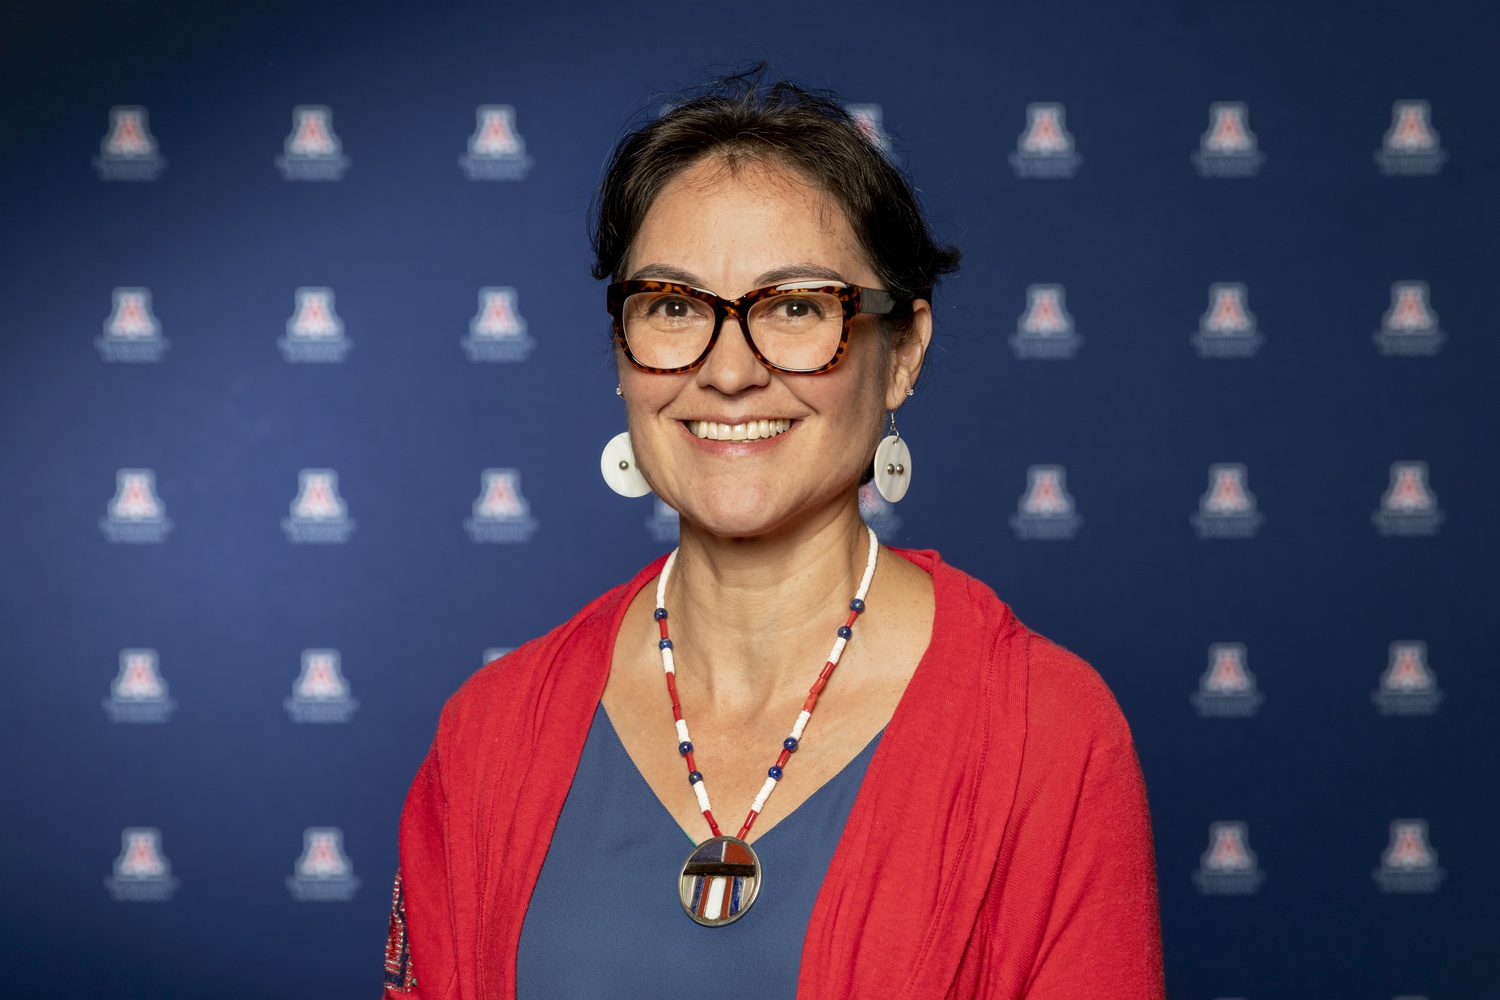 President Joe Biden nominated Harvard University Native American Program Executive Director Shelly C. Lowe to serve as the 12th chair of the National Endowment for the Humanities.